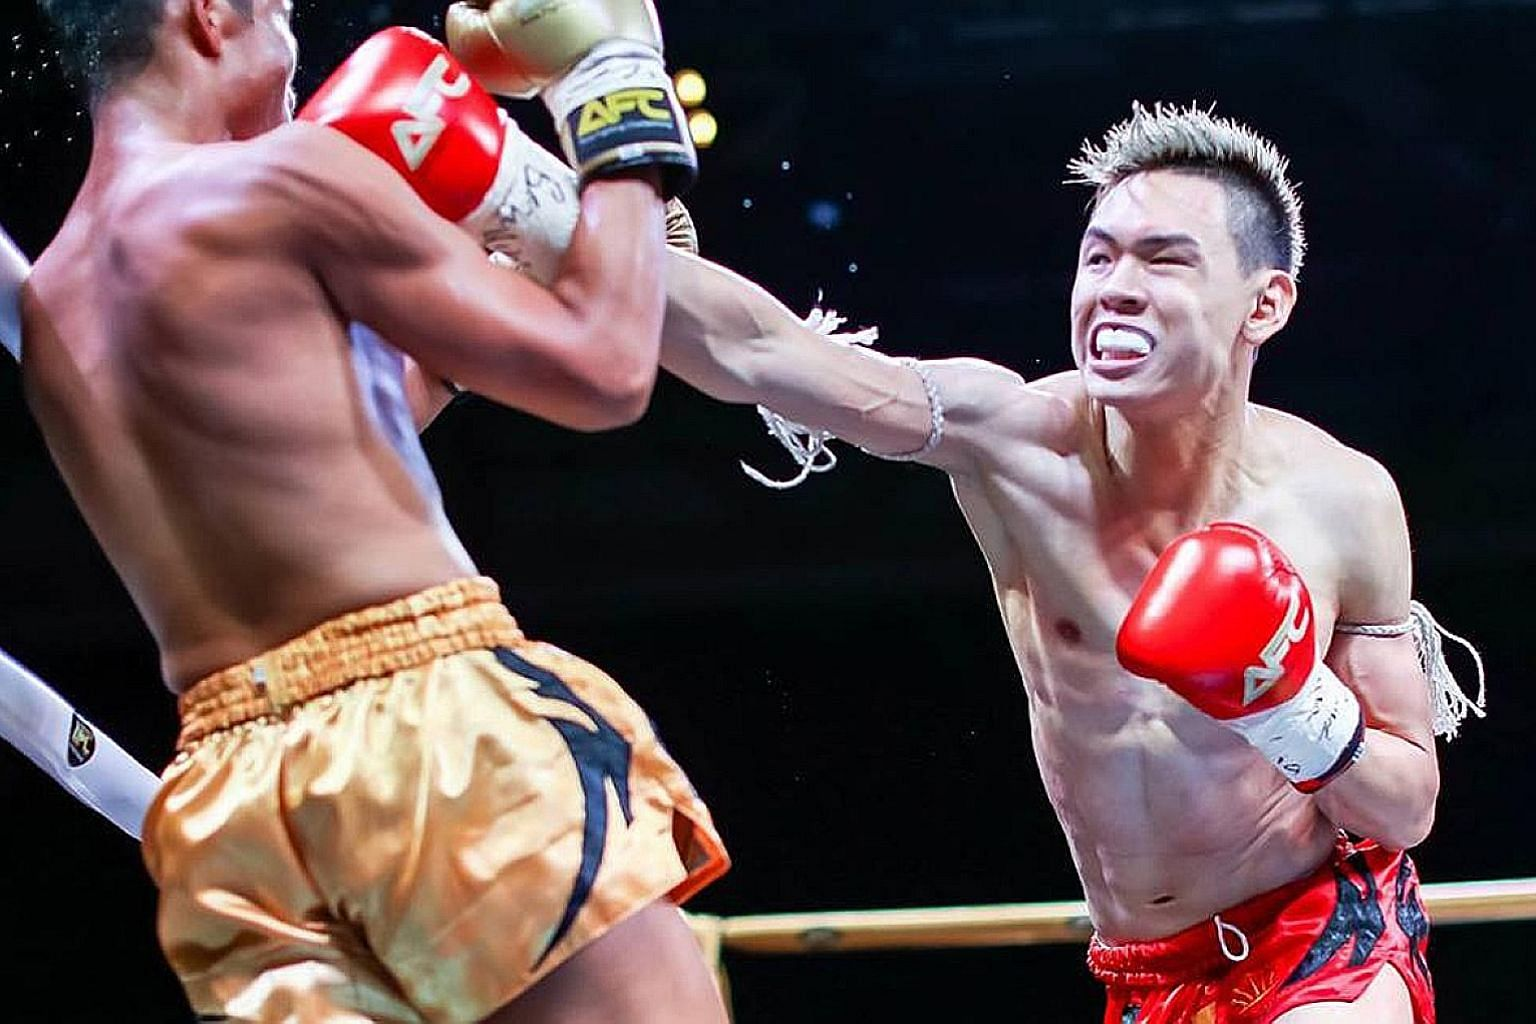 Wynn Neo (in red), seen here competing at the Asia Fighting Championship in 2017, will compete for the WBC muay thai featherweight title at SFC 7 on Saturday. PHOTO: FACEBOOK/ASIA FIGHTING CHAMPIONSHIP